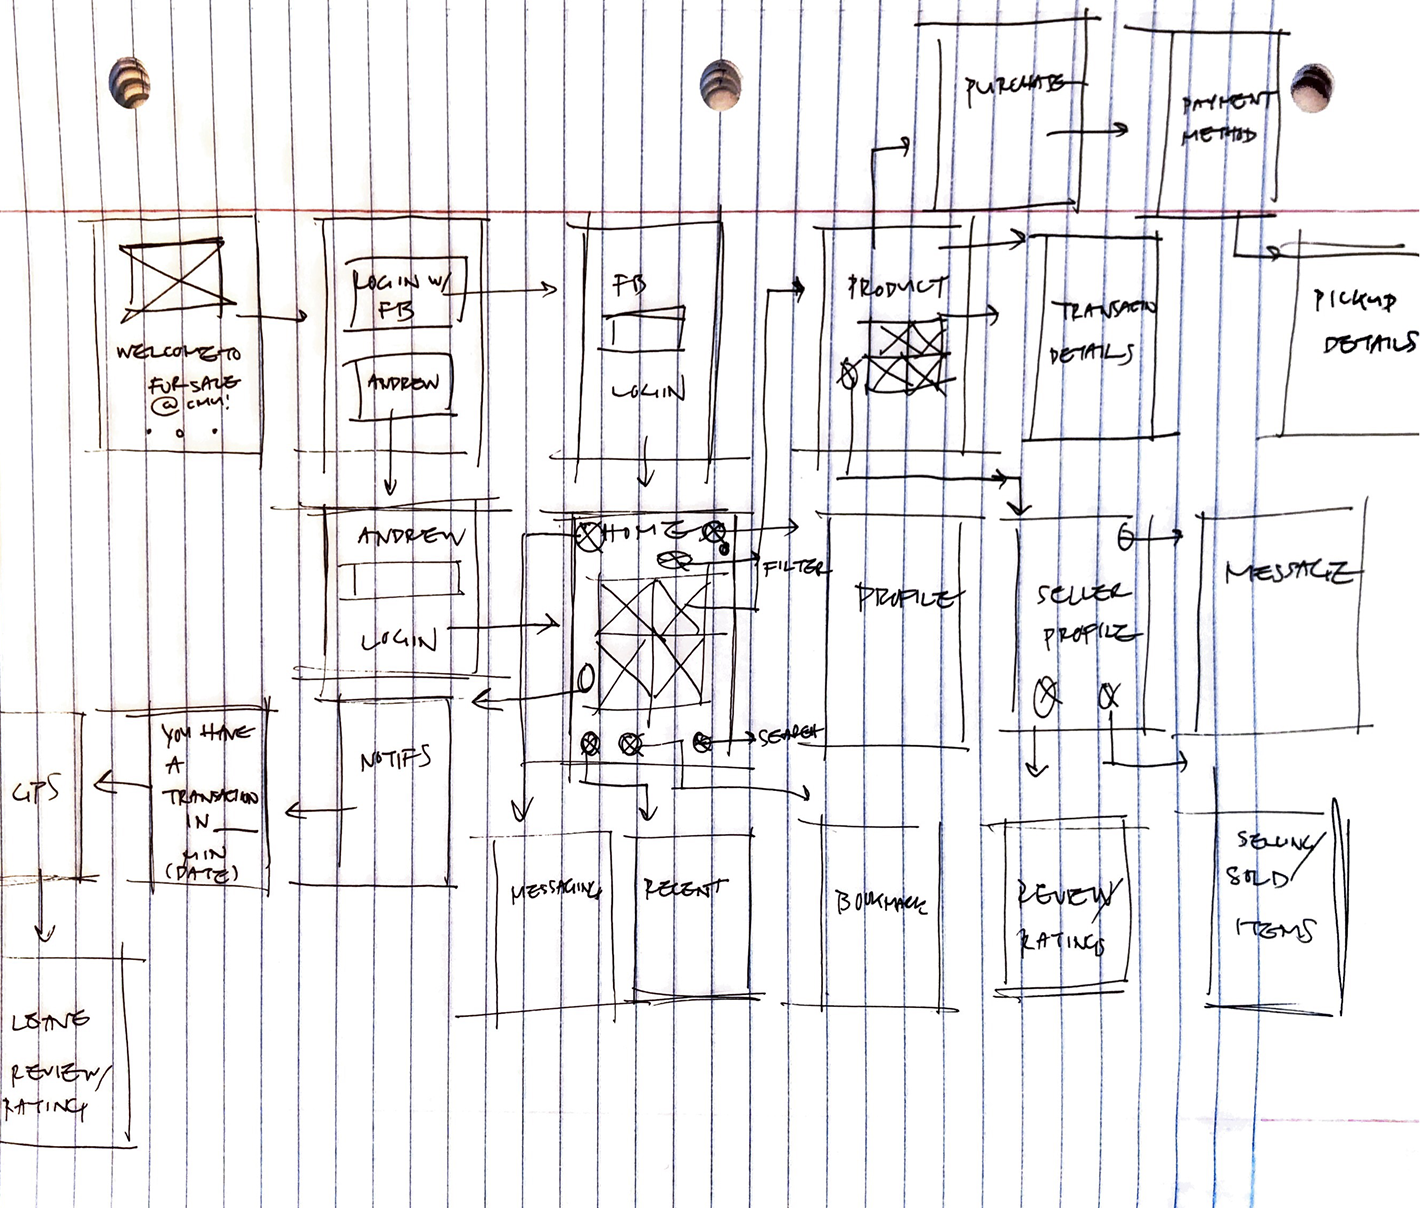 Wireframe flow sketches